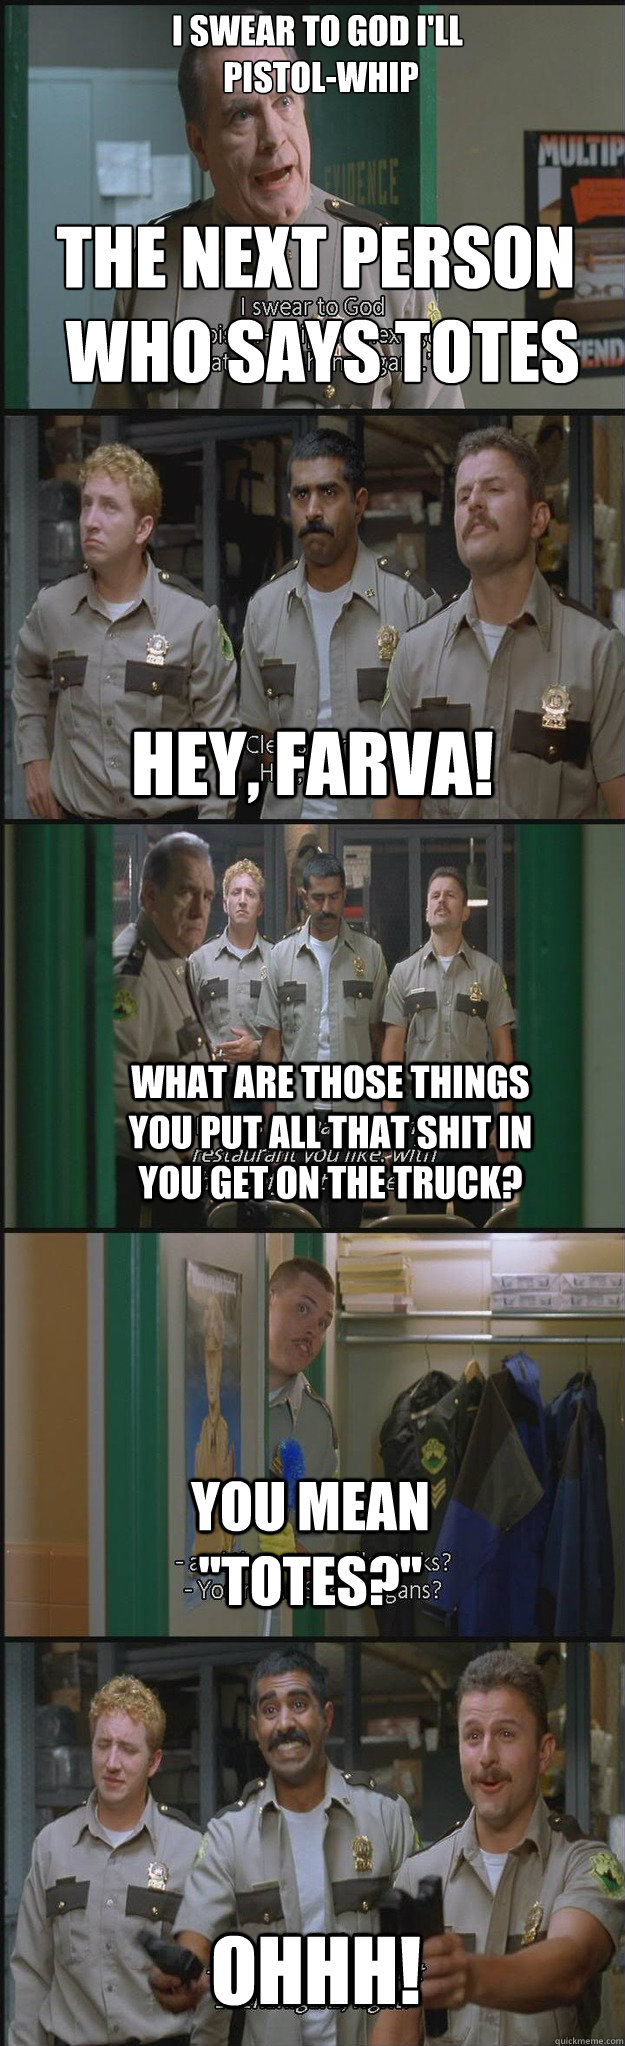 I swear to god i'll  pistol-whip the next person  who says totes Hey, farva! what are those things you put all that shit in you get on the truck? you mean